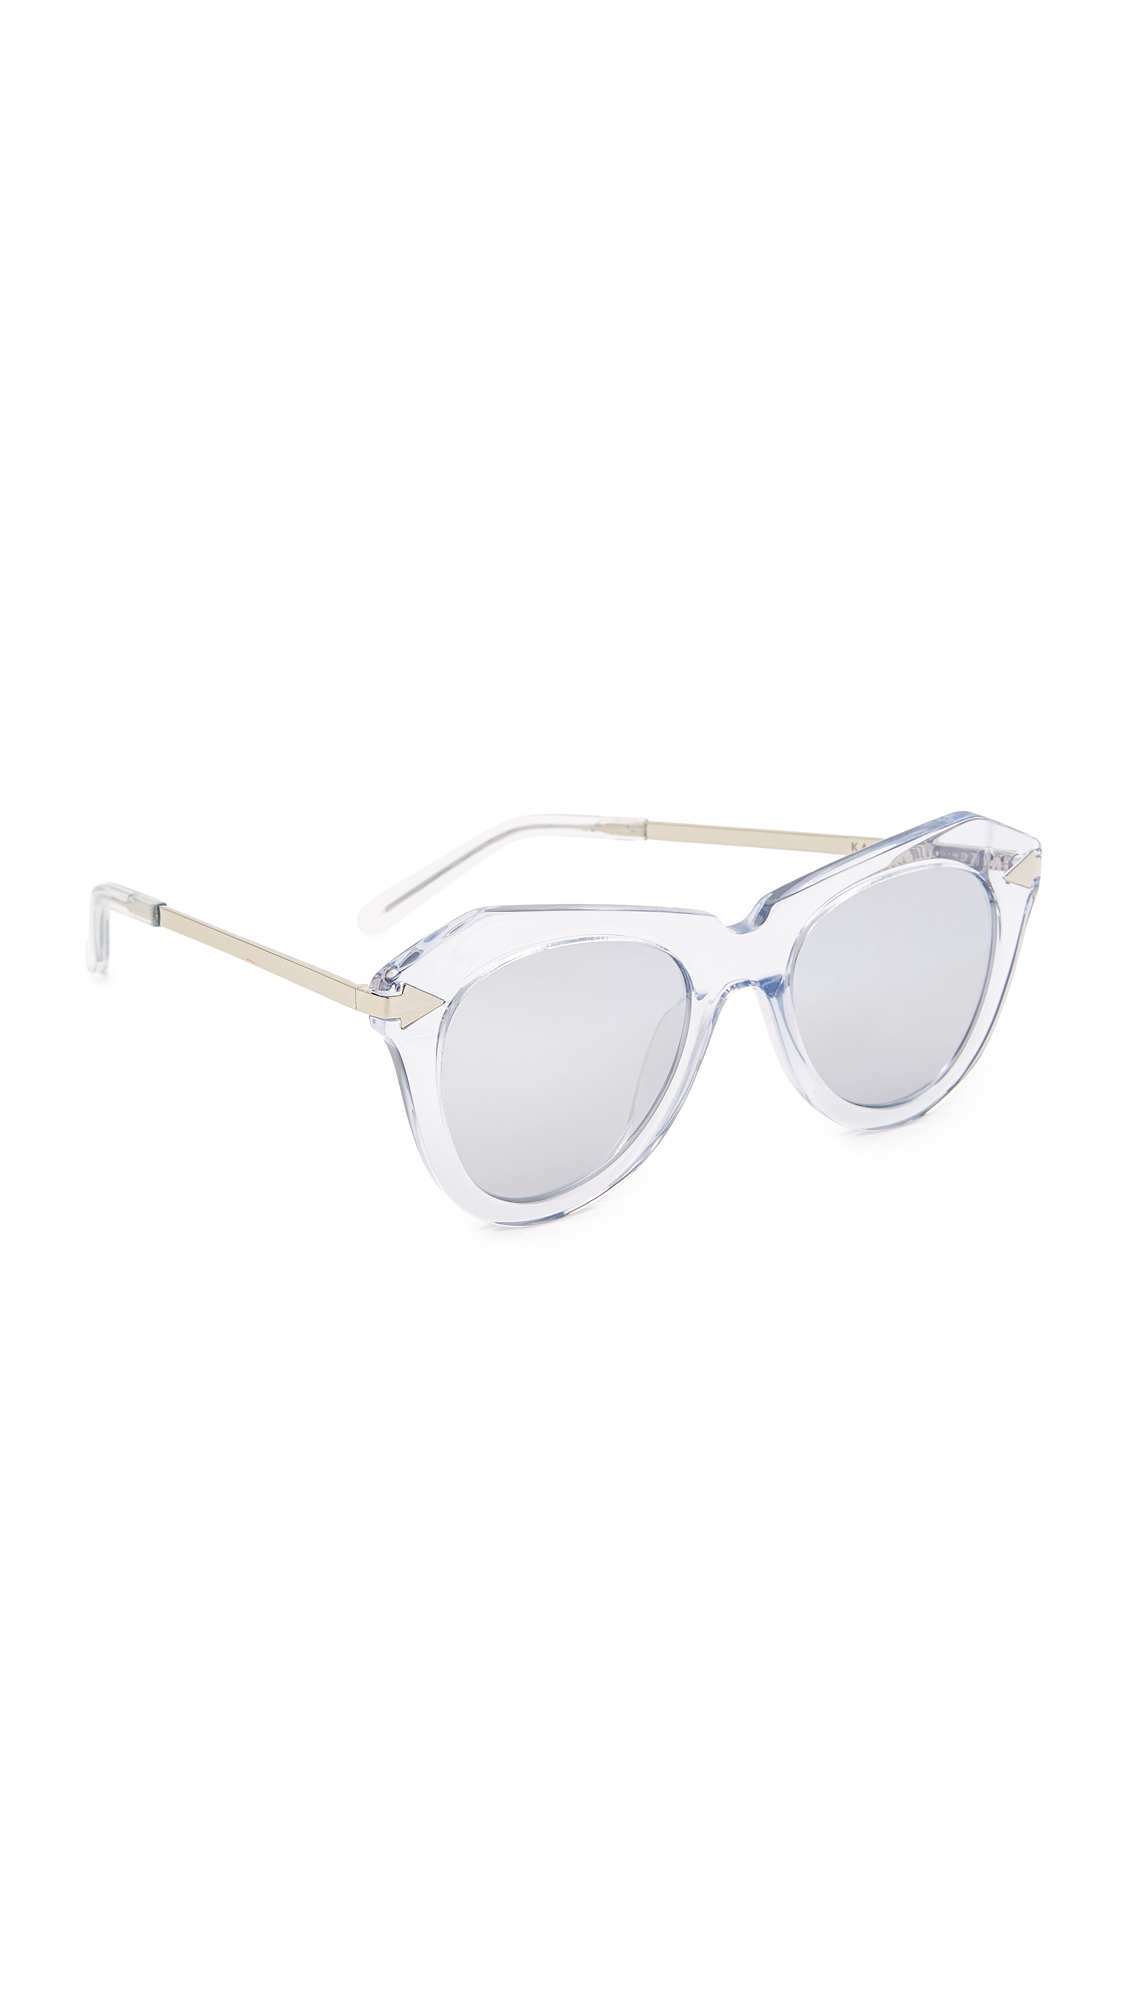 Glamorous Karen Walker sunglasses in angular, transparent frames. Wire arms. Mirrored lenses. Hard case and cleaning cloth included. Cateye frame. Non polarized lenses. Imported, China. Measurements Width: 5.5in / 14cm Height: 2.25in / 5.5cm Lens Width: 50mm. Available